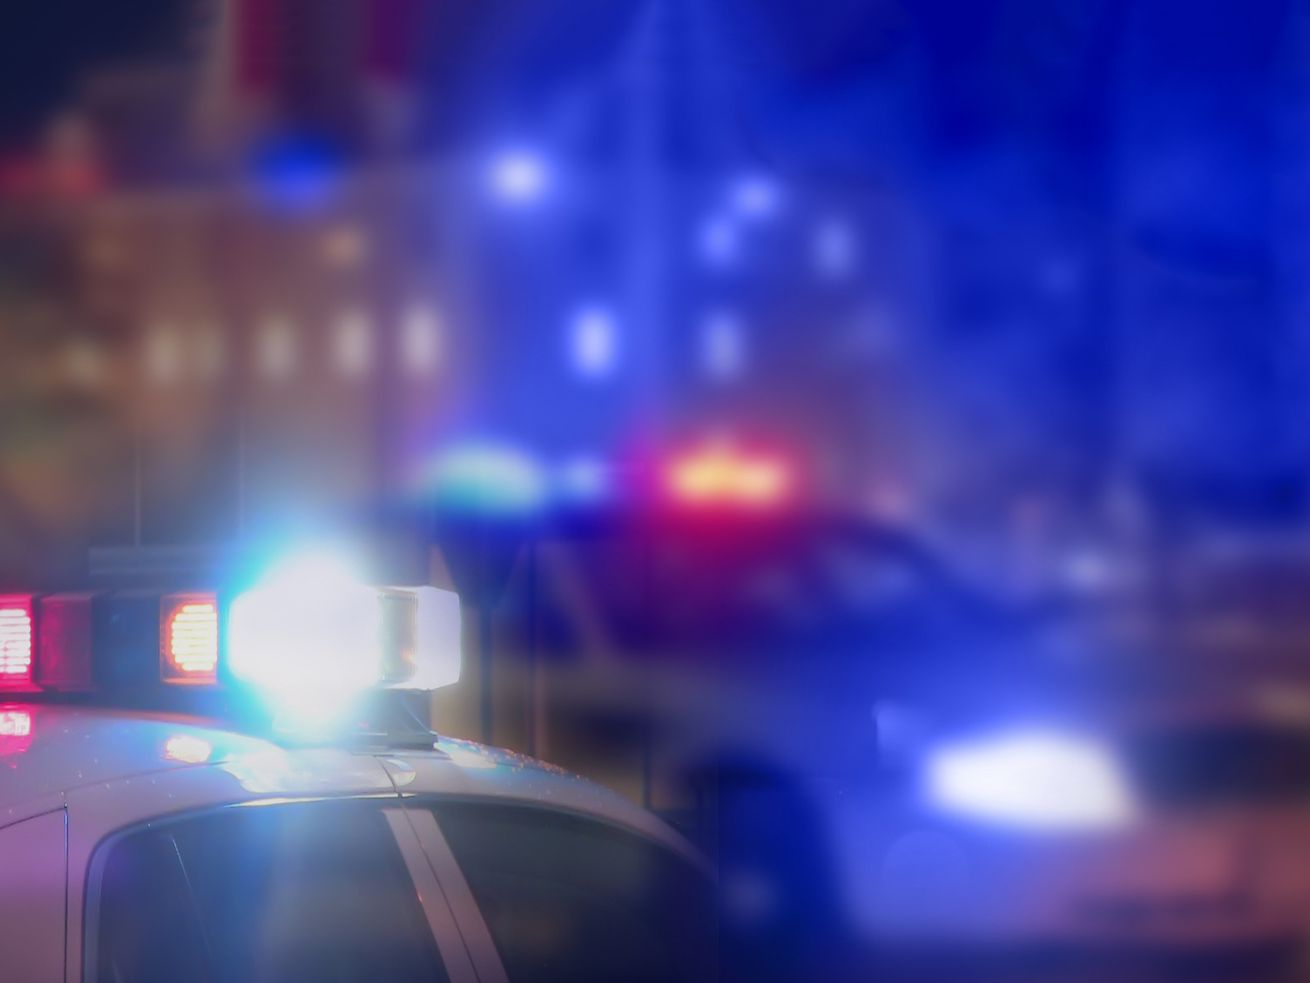 A man was fatally shot by police May 1, 2021, in Porter County, Indiana.